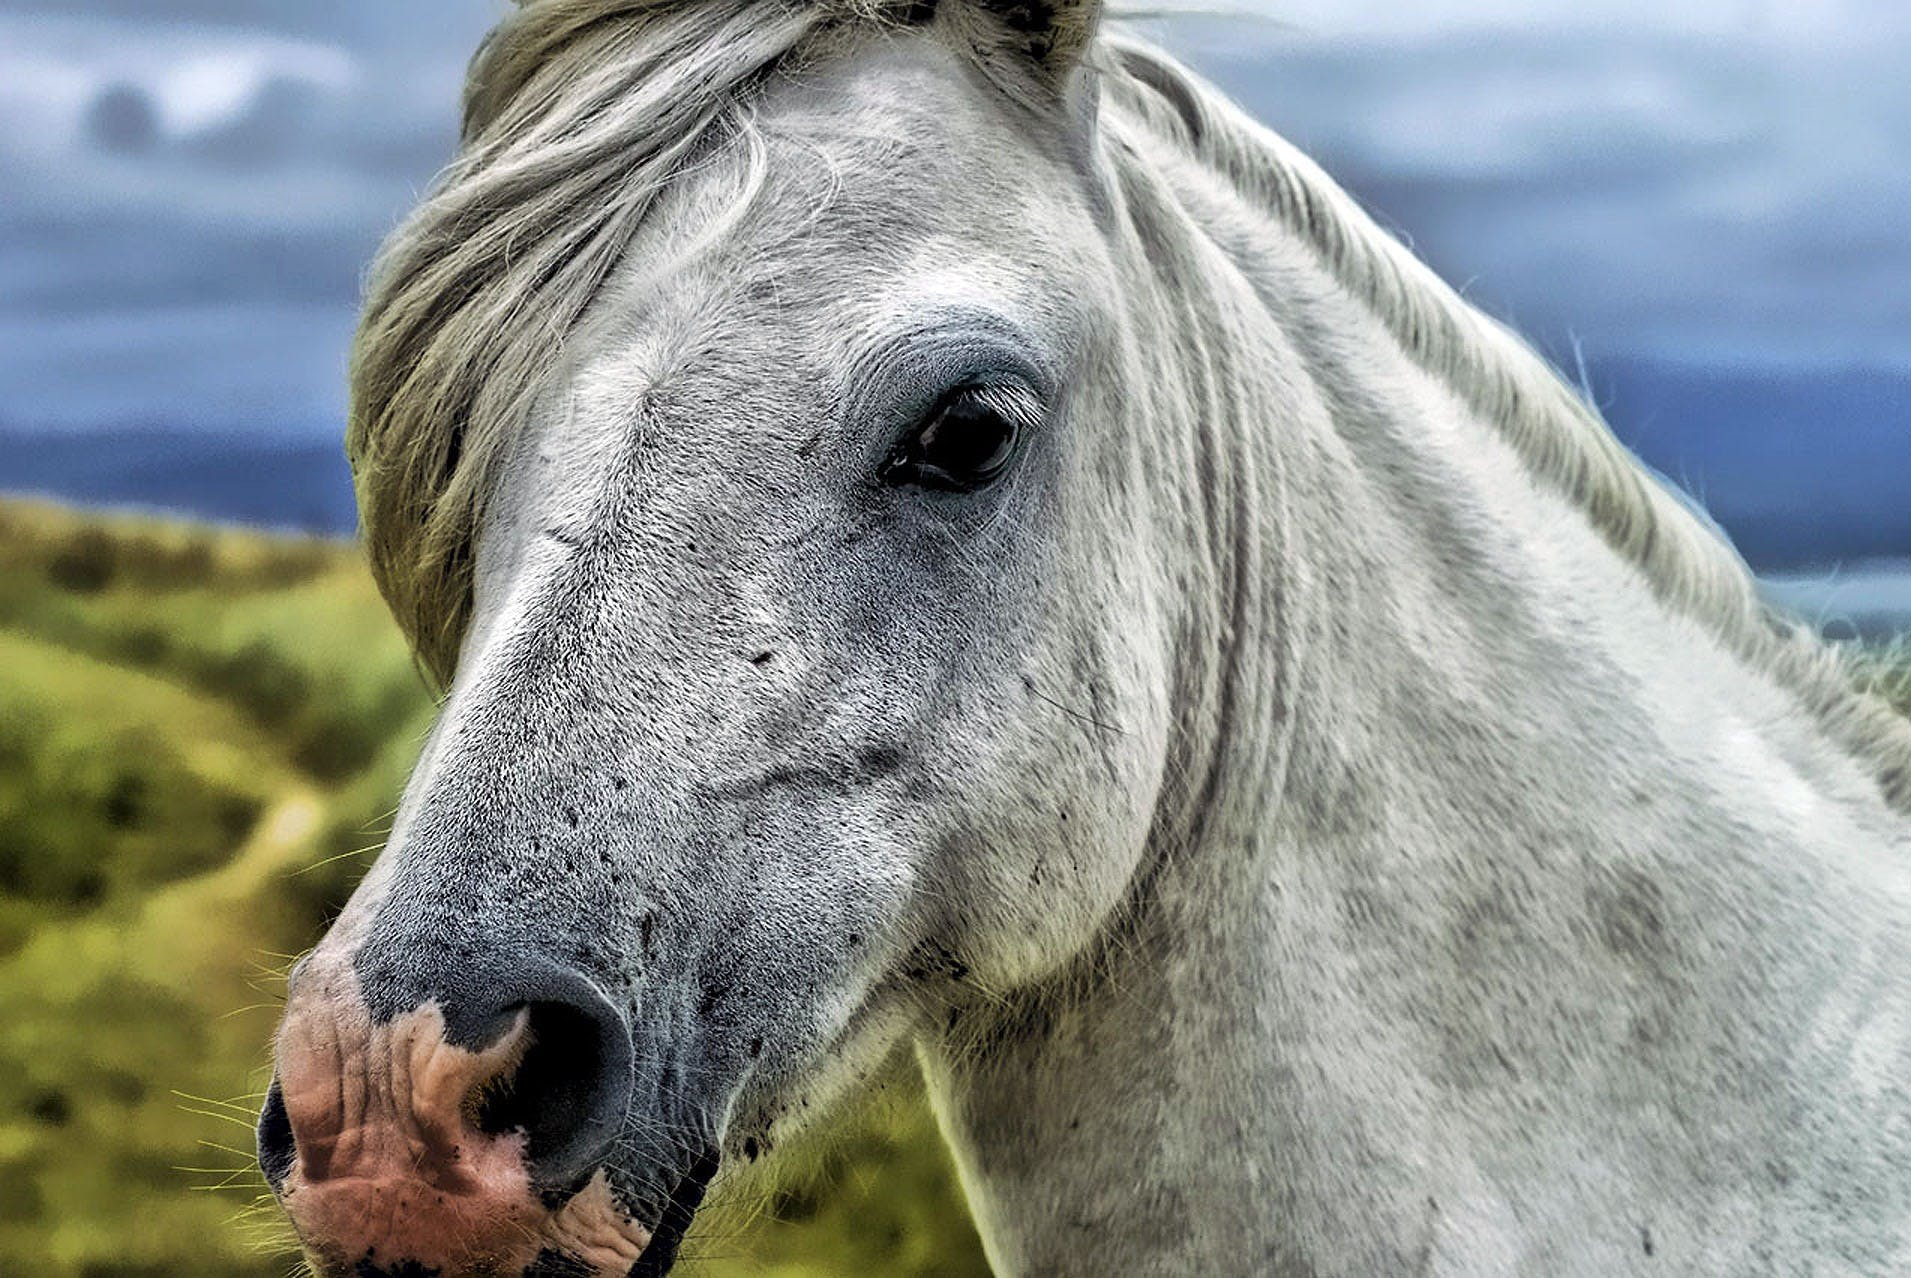 Close Up Photography of Gray and White Horse